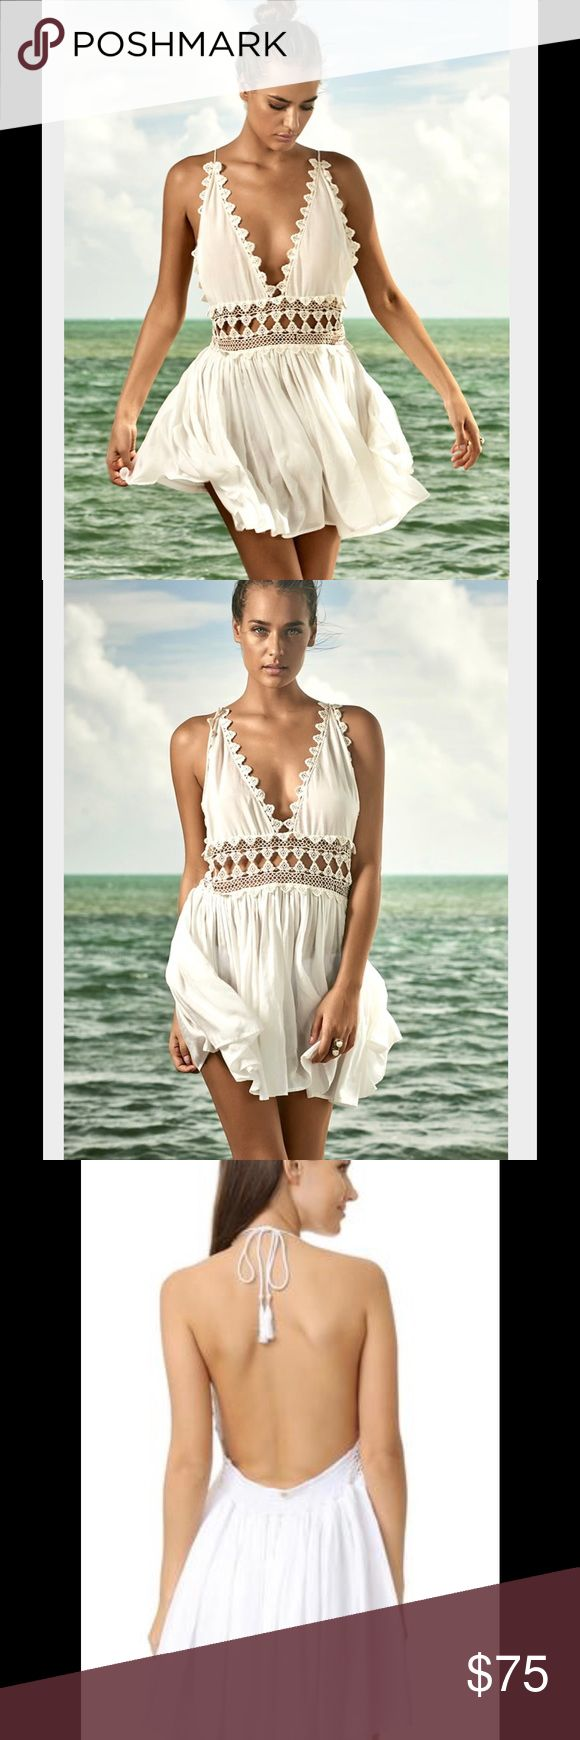 PilYQ Waterlily Crochet Dress Size XS/S Beautiful PilyQ Waterlily Crochet dress in white. So pretty and sexy. 😜  It is lines under the skirt portion of the dress. My dress is firm, I did pay full price. 🙂 Pilyq Swim Coverups